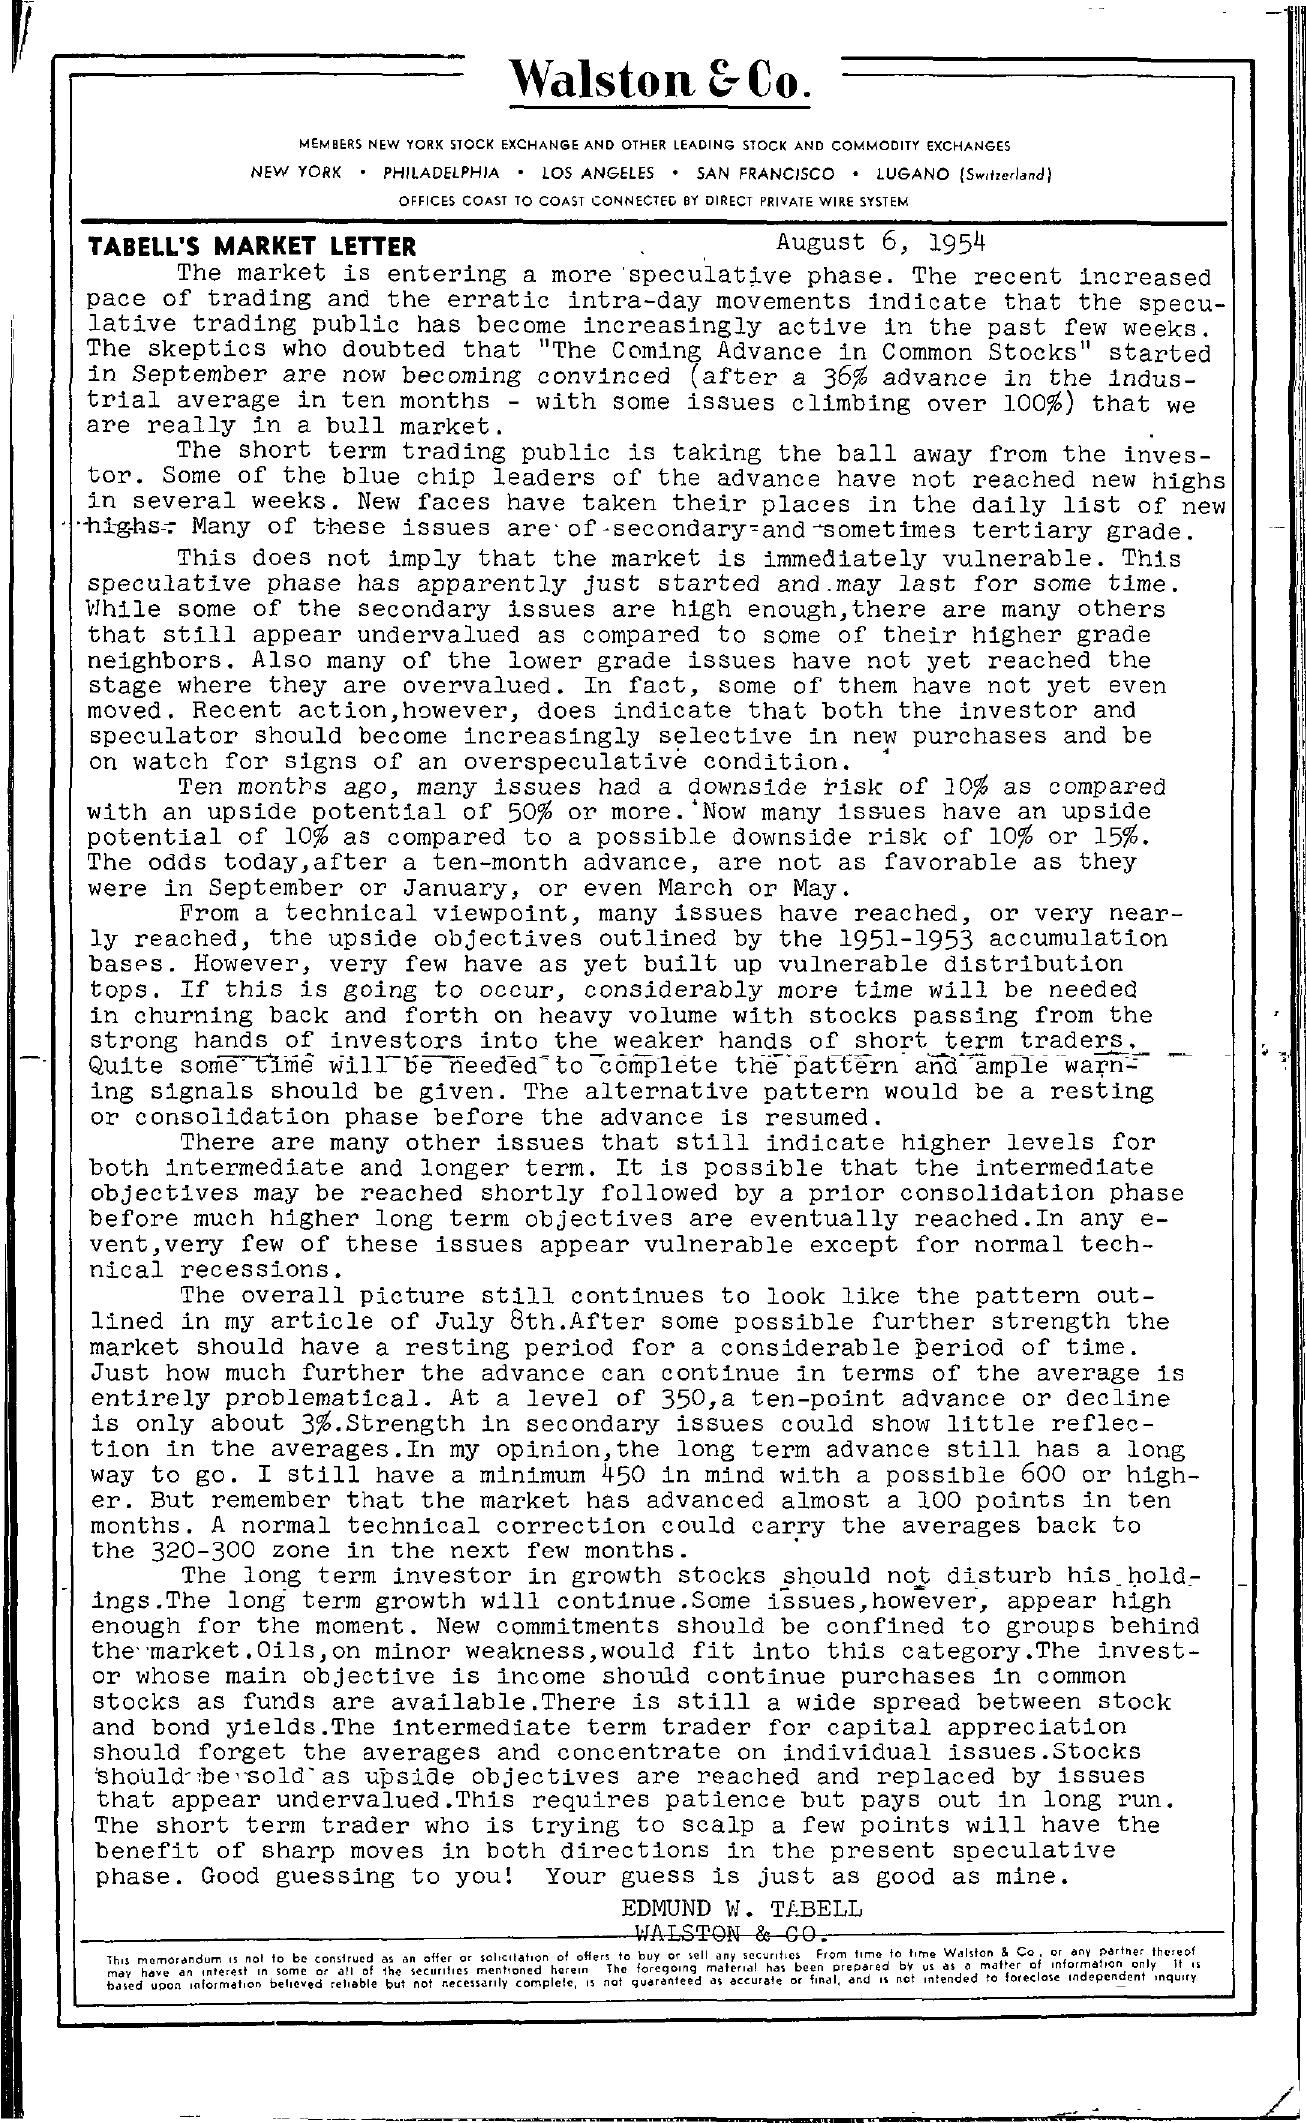 Tabell's Market Letter - August 06, 1954